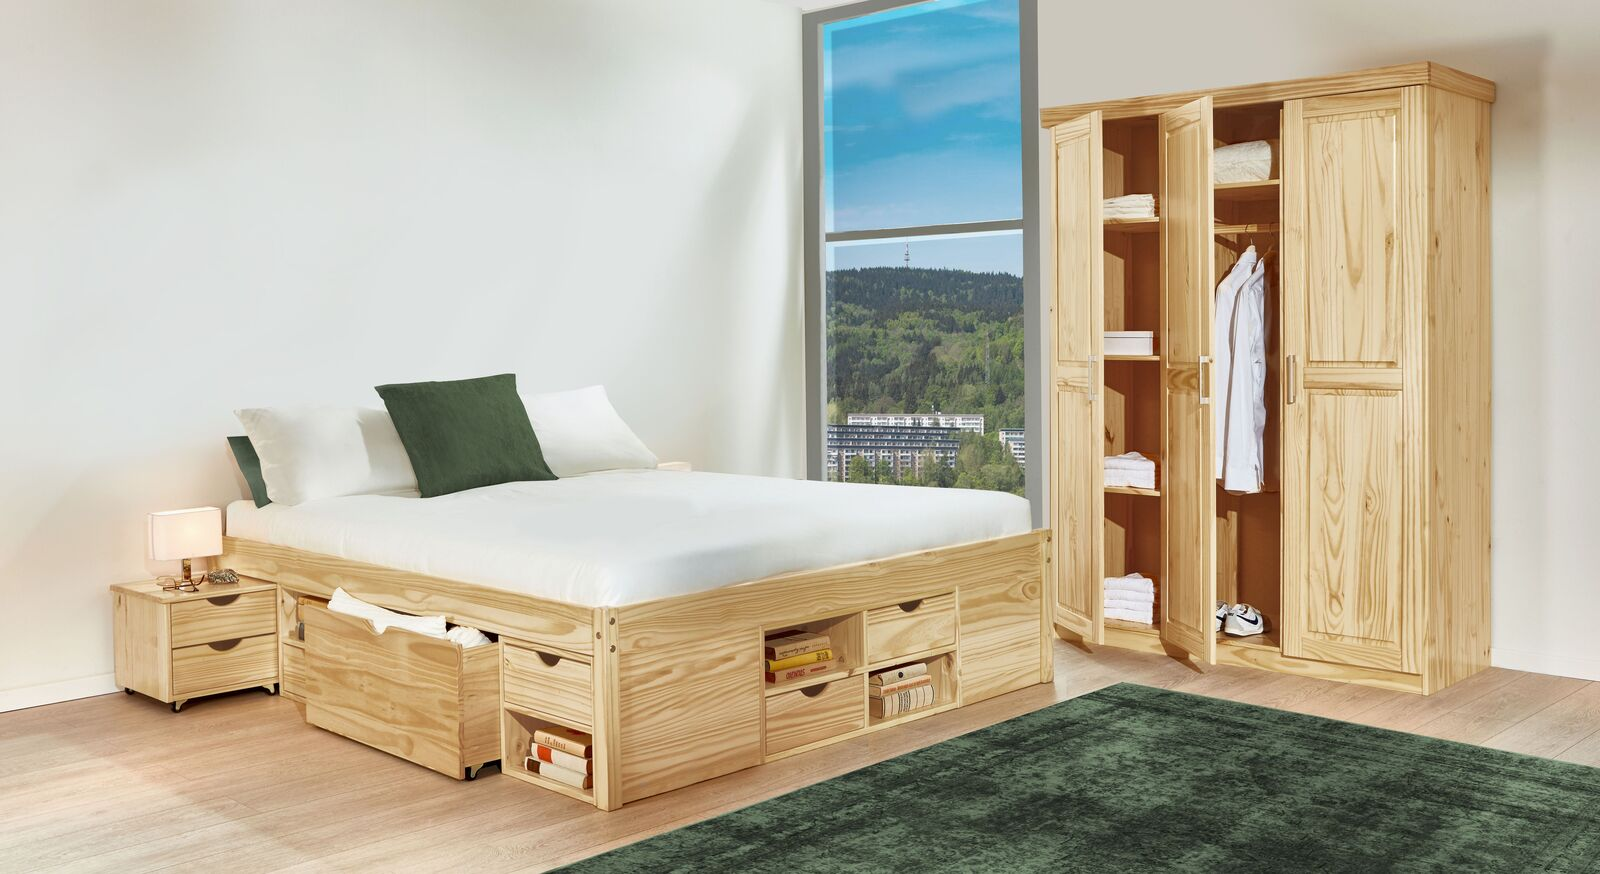 g nstiges komplett schlafzimmer aus kiefer oslo. Black Bedroom Furniture Sets. Home Design Ideas